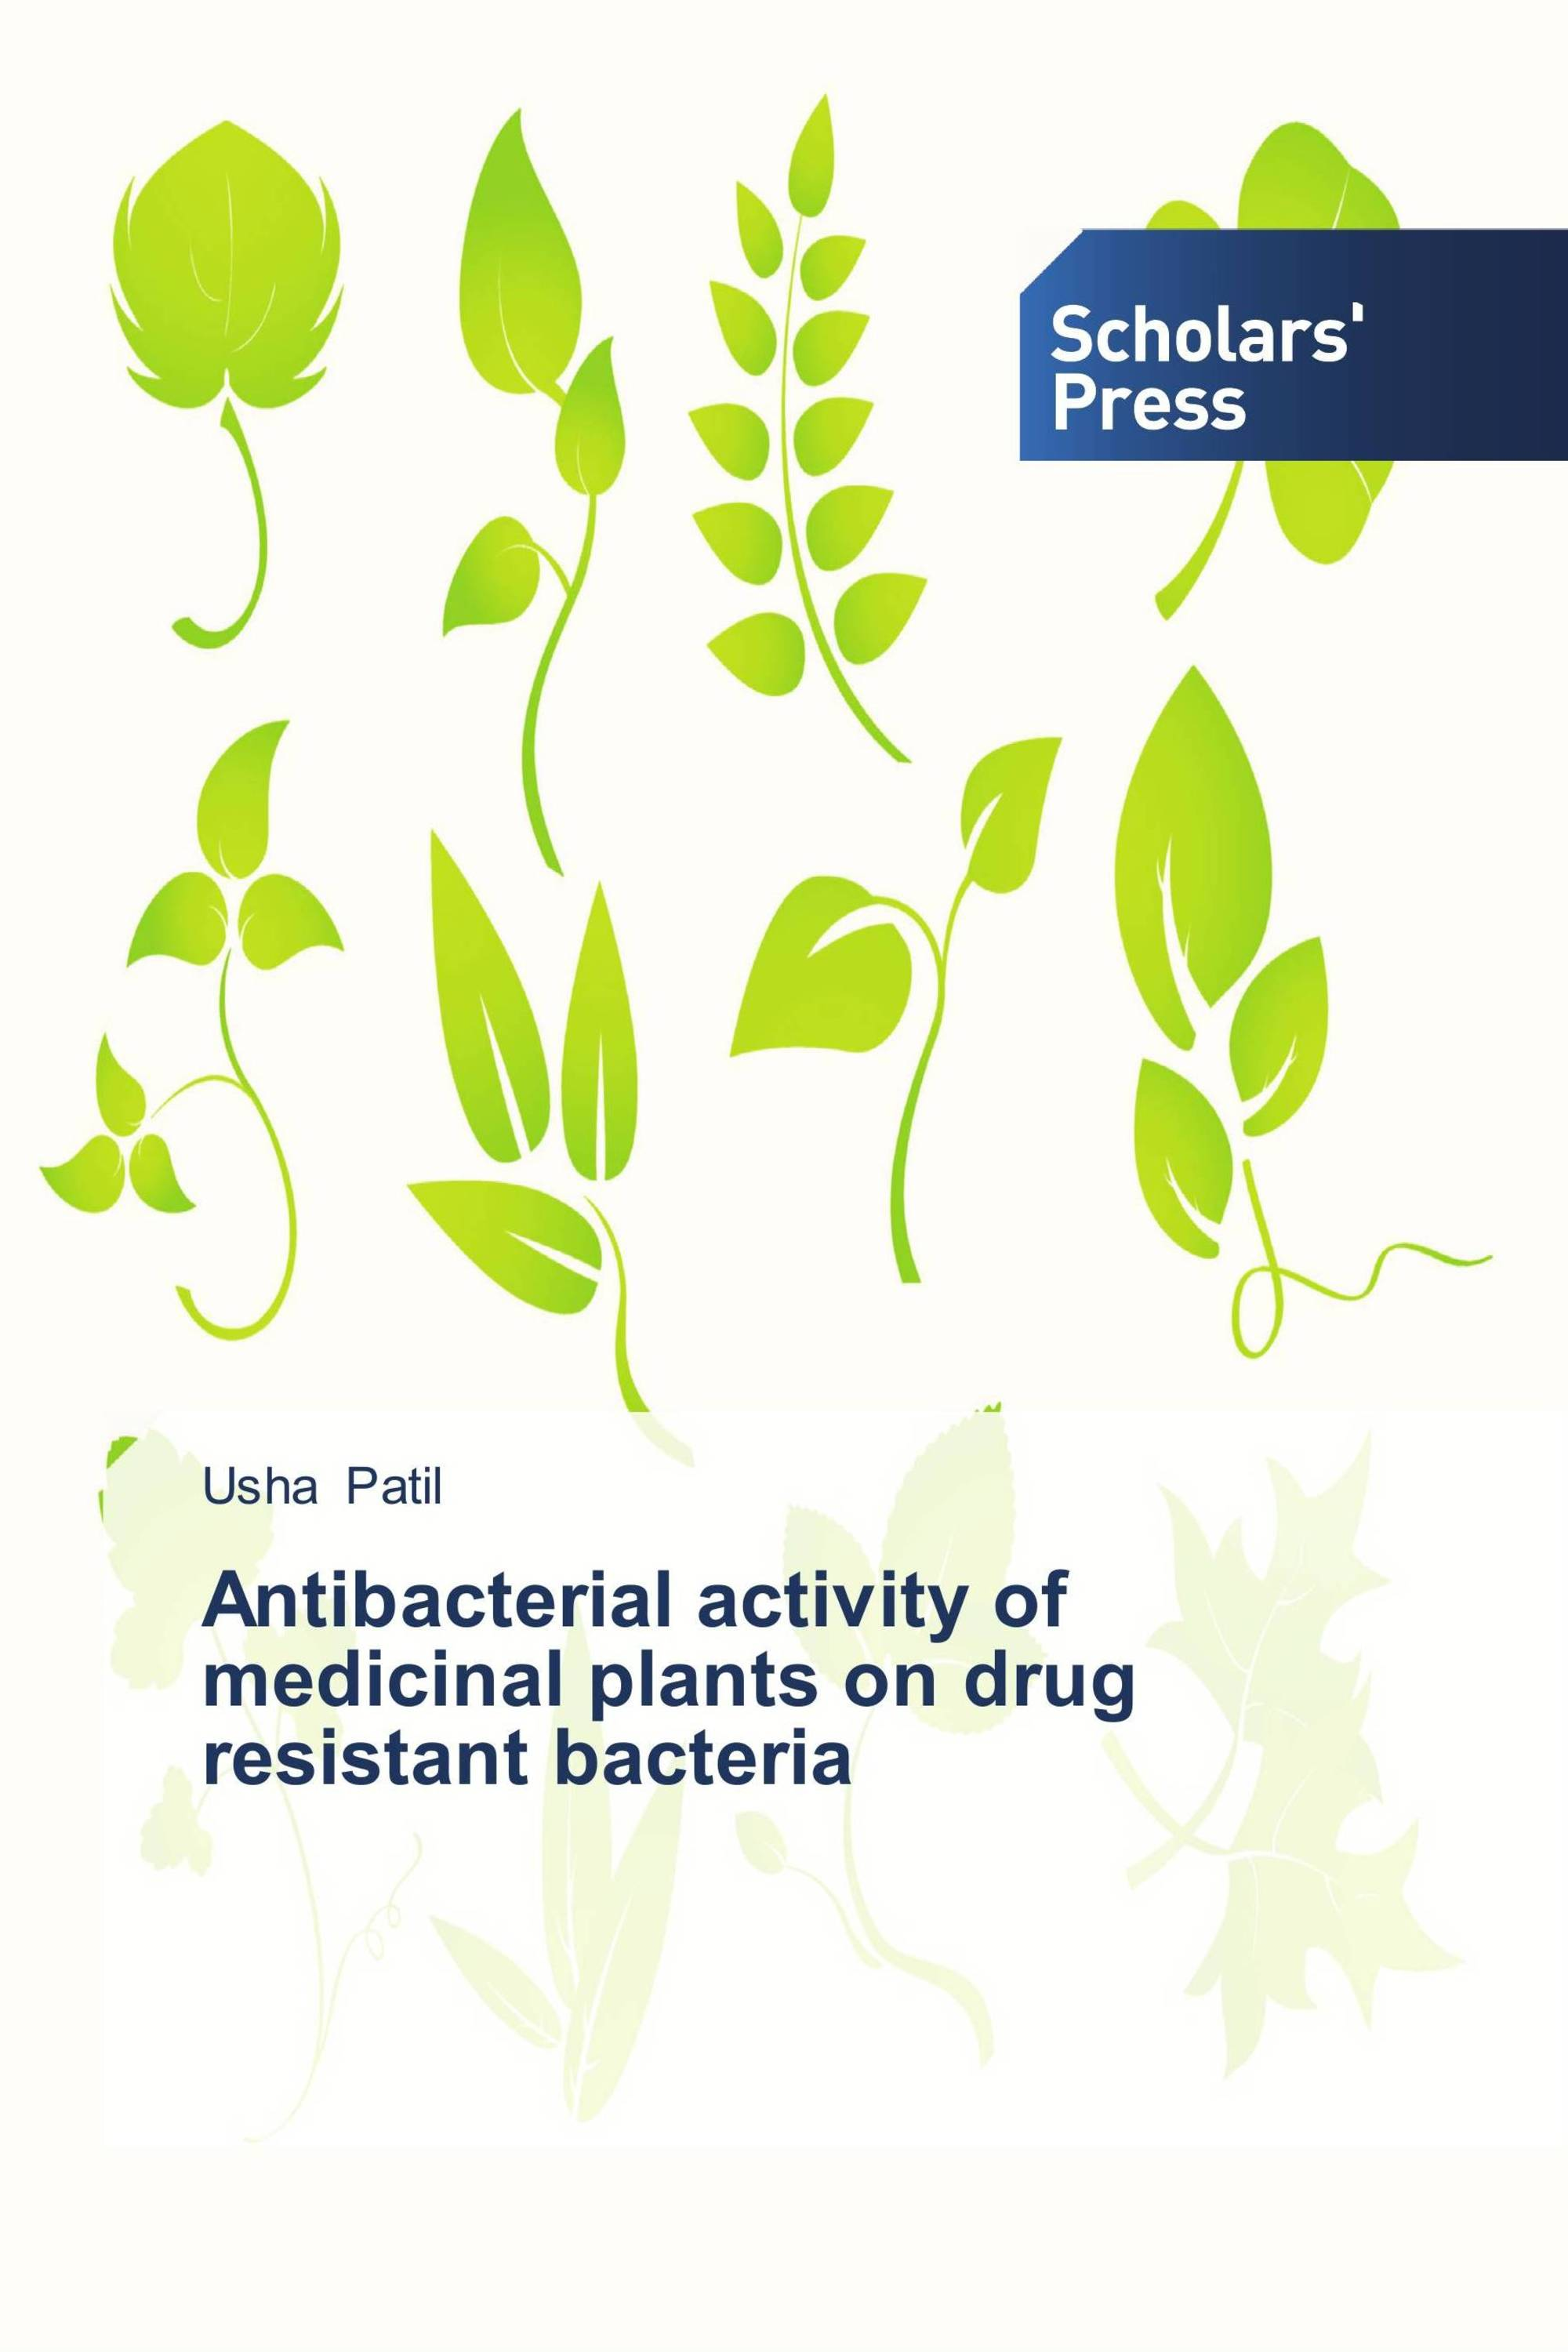 thesis - antibacterial activity of medicinal plants Antibacterial activity of medicinal plants against pathogens causing complicated urinary tract infections antibacterial activity of medicinal plants against.